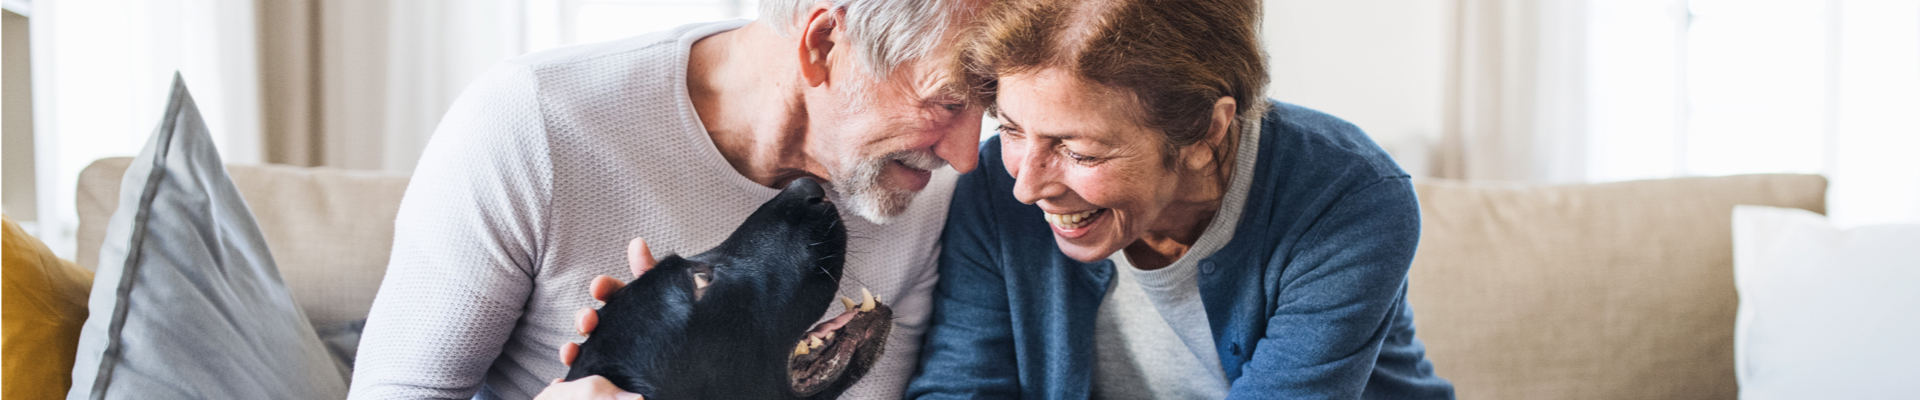 A senior man and a senior woman sit on the couch and pet a black dog